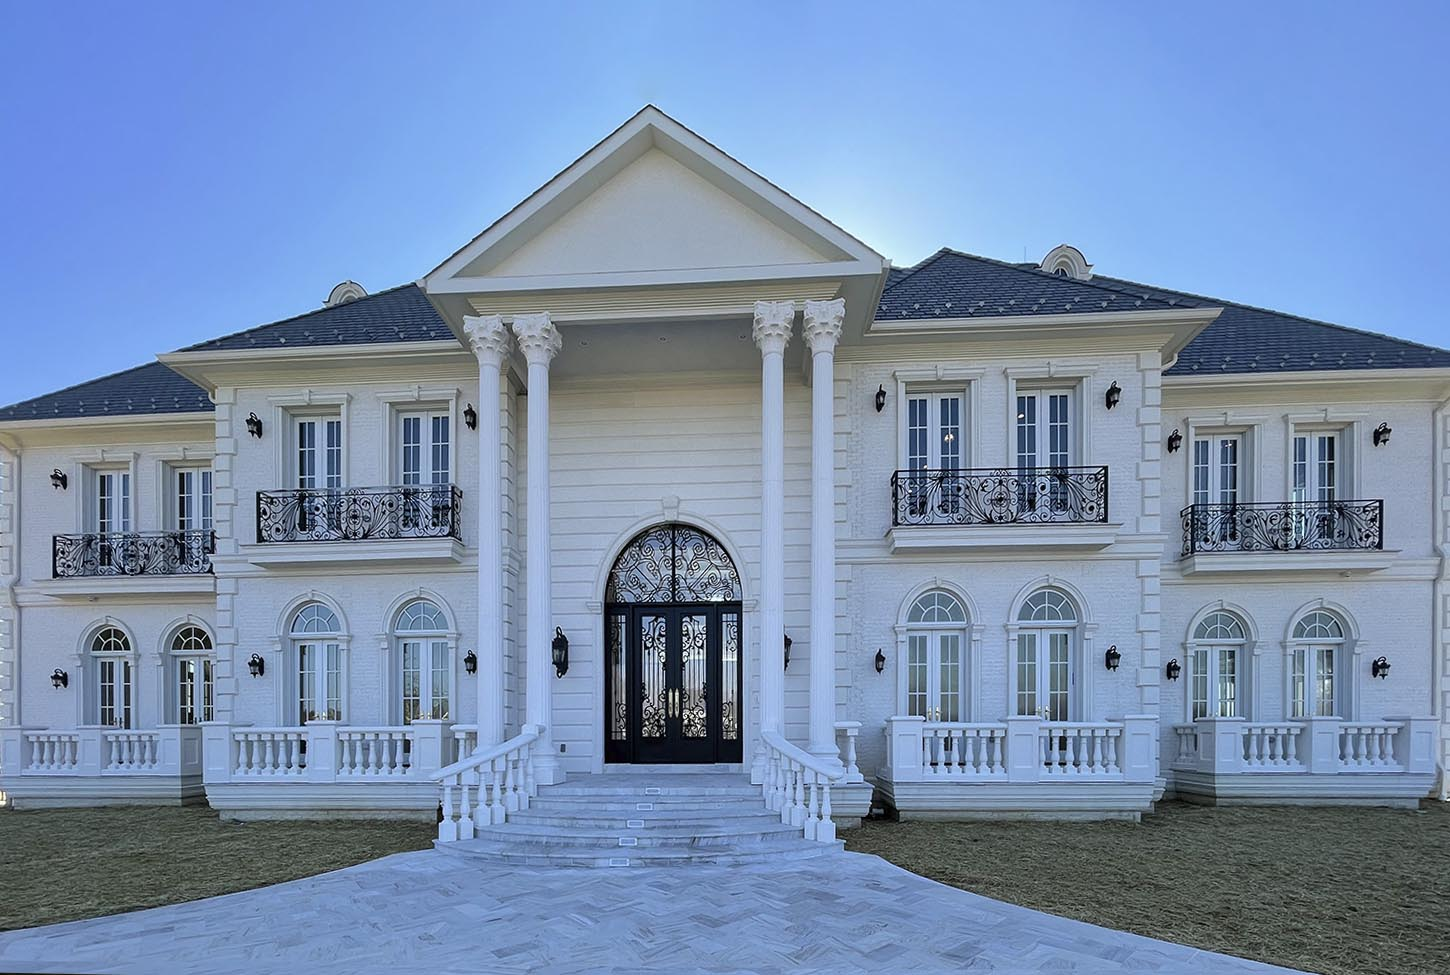 N11 Home and Build Entrance of Estate Potomac, Maryland